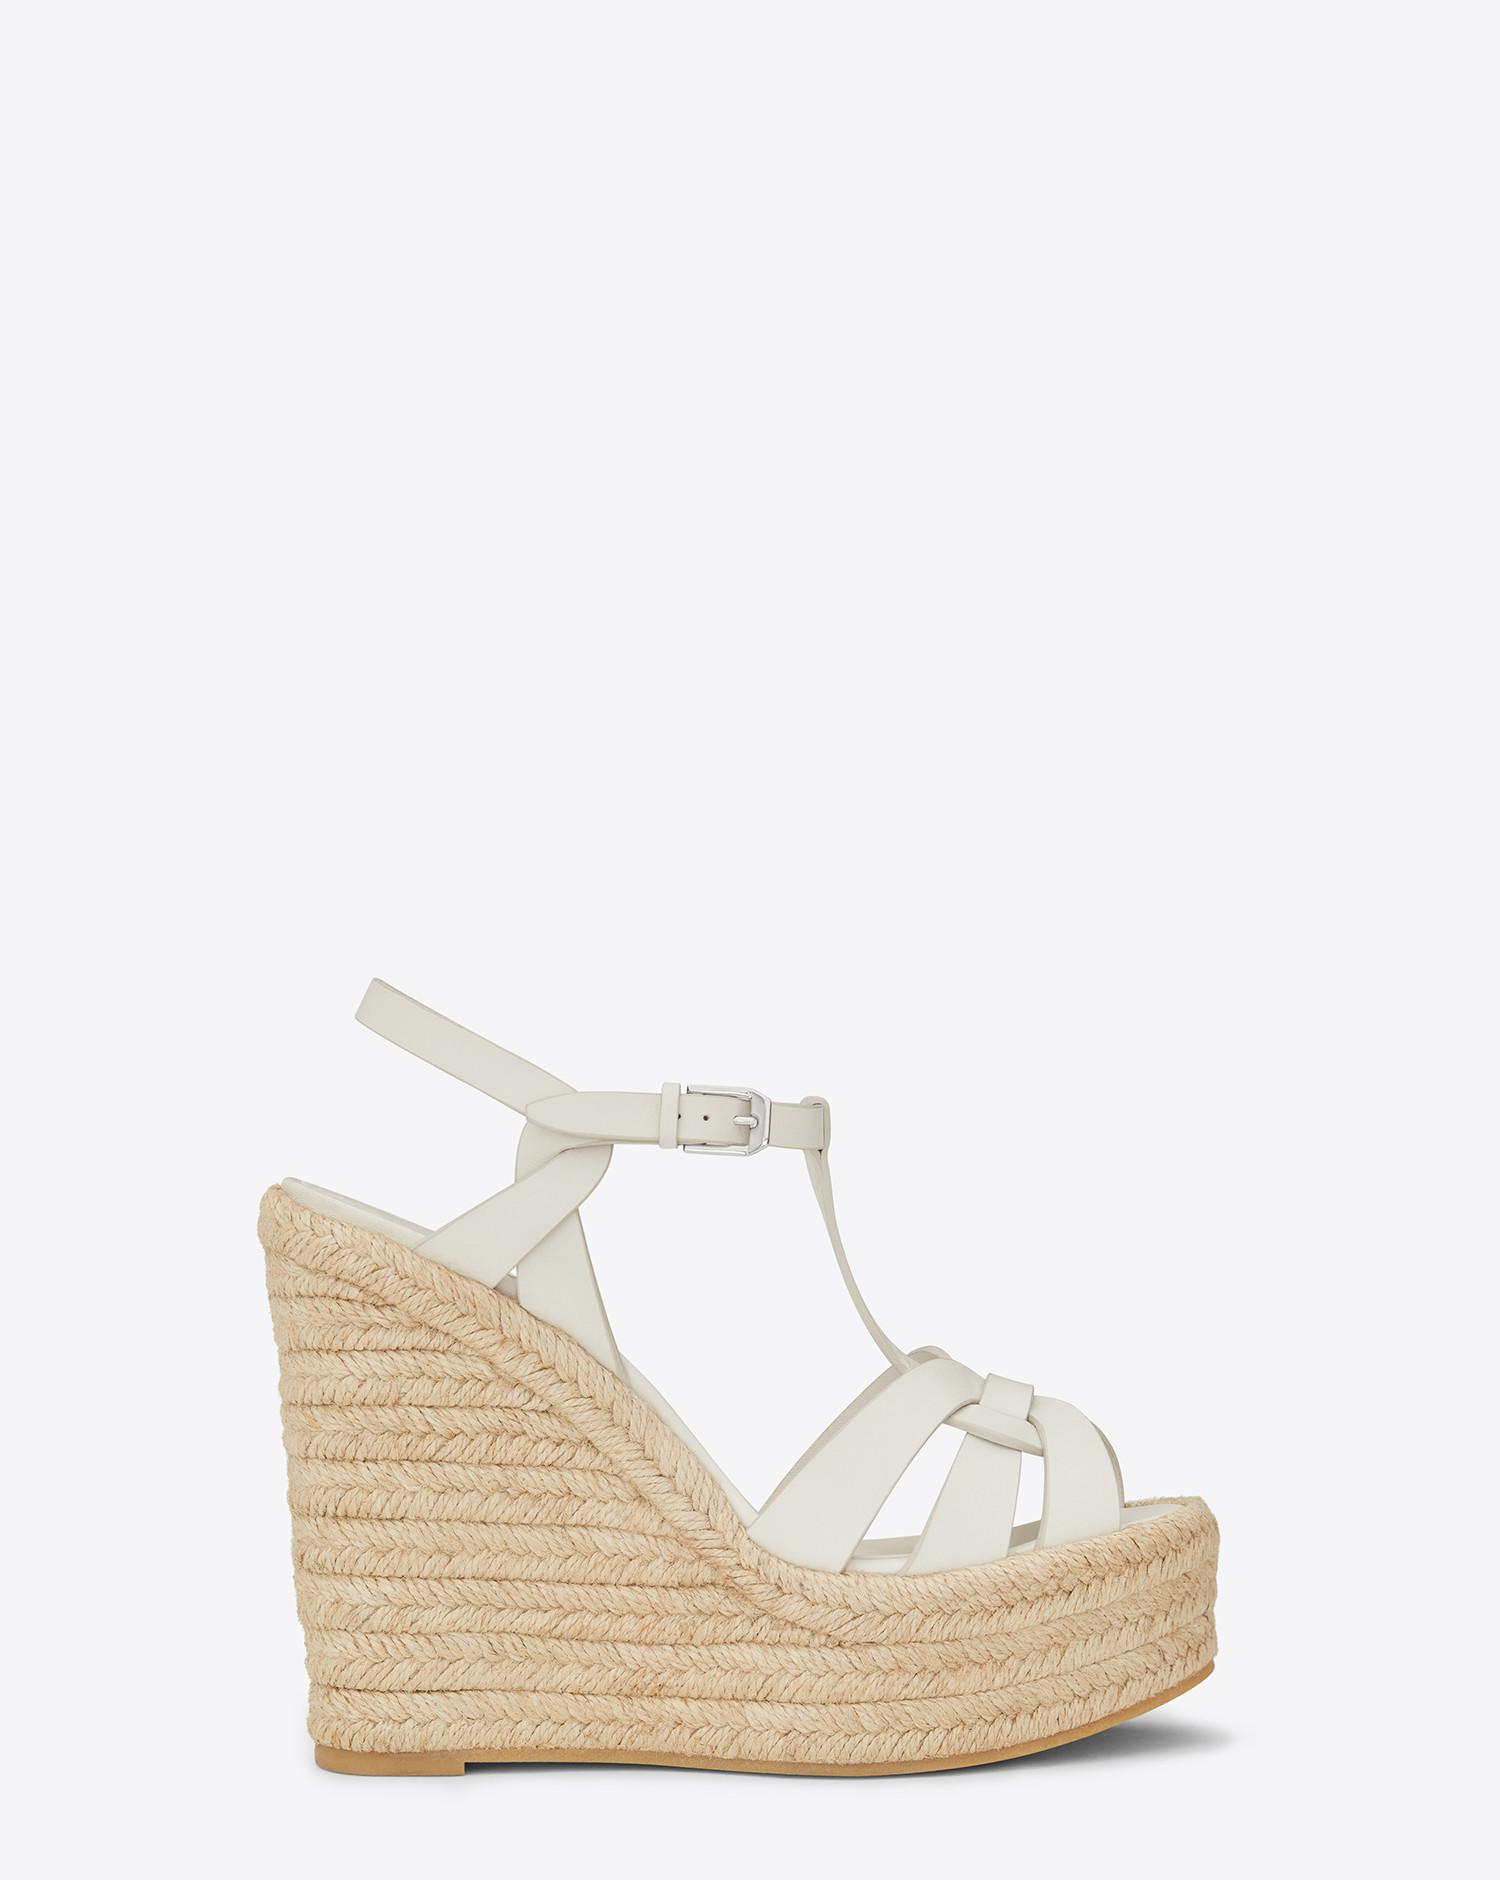 3ef9b17ebc5 Saint Laurent Espadrille Wedge Sandal In Leather in White - Lyst